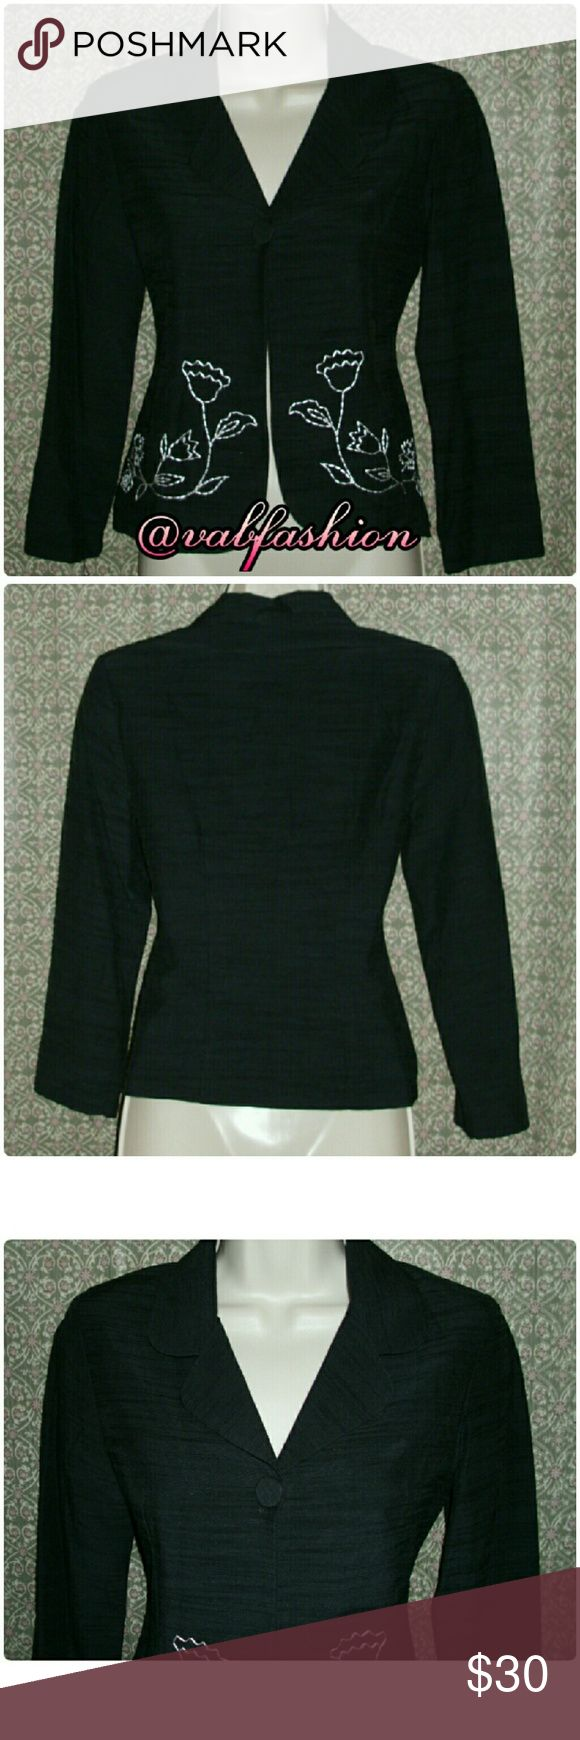 """LISTING!! ONE BUTTON SHORT BLAZER! Cute short blazer by Maxou. Beautiful white flower stitching on front. A single button front closure. Shoulder padded. 34% rayon 34% cotton and 32% nylon. 100% polyester lining. Length is 20"""" waist is 28""""  bust is 30-32"""" sleeves are 19.5""""  size 10 maxou Jackets & Coats Blazers"""